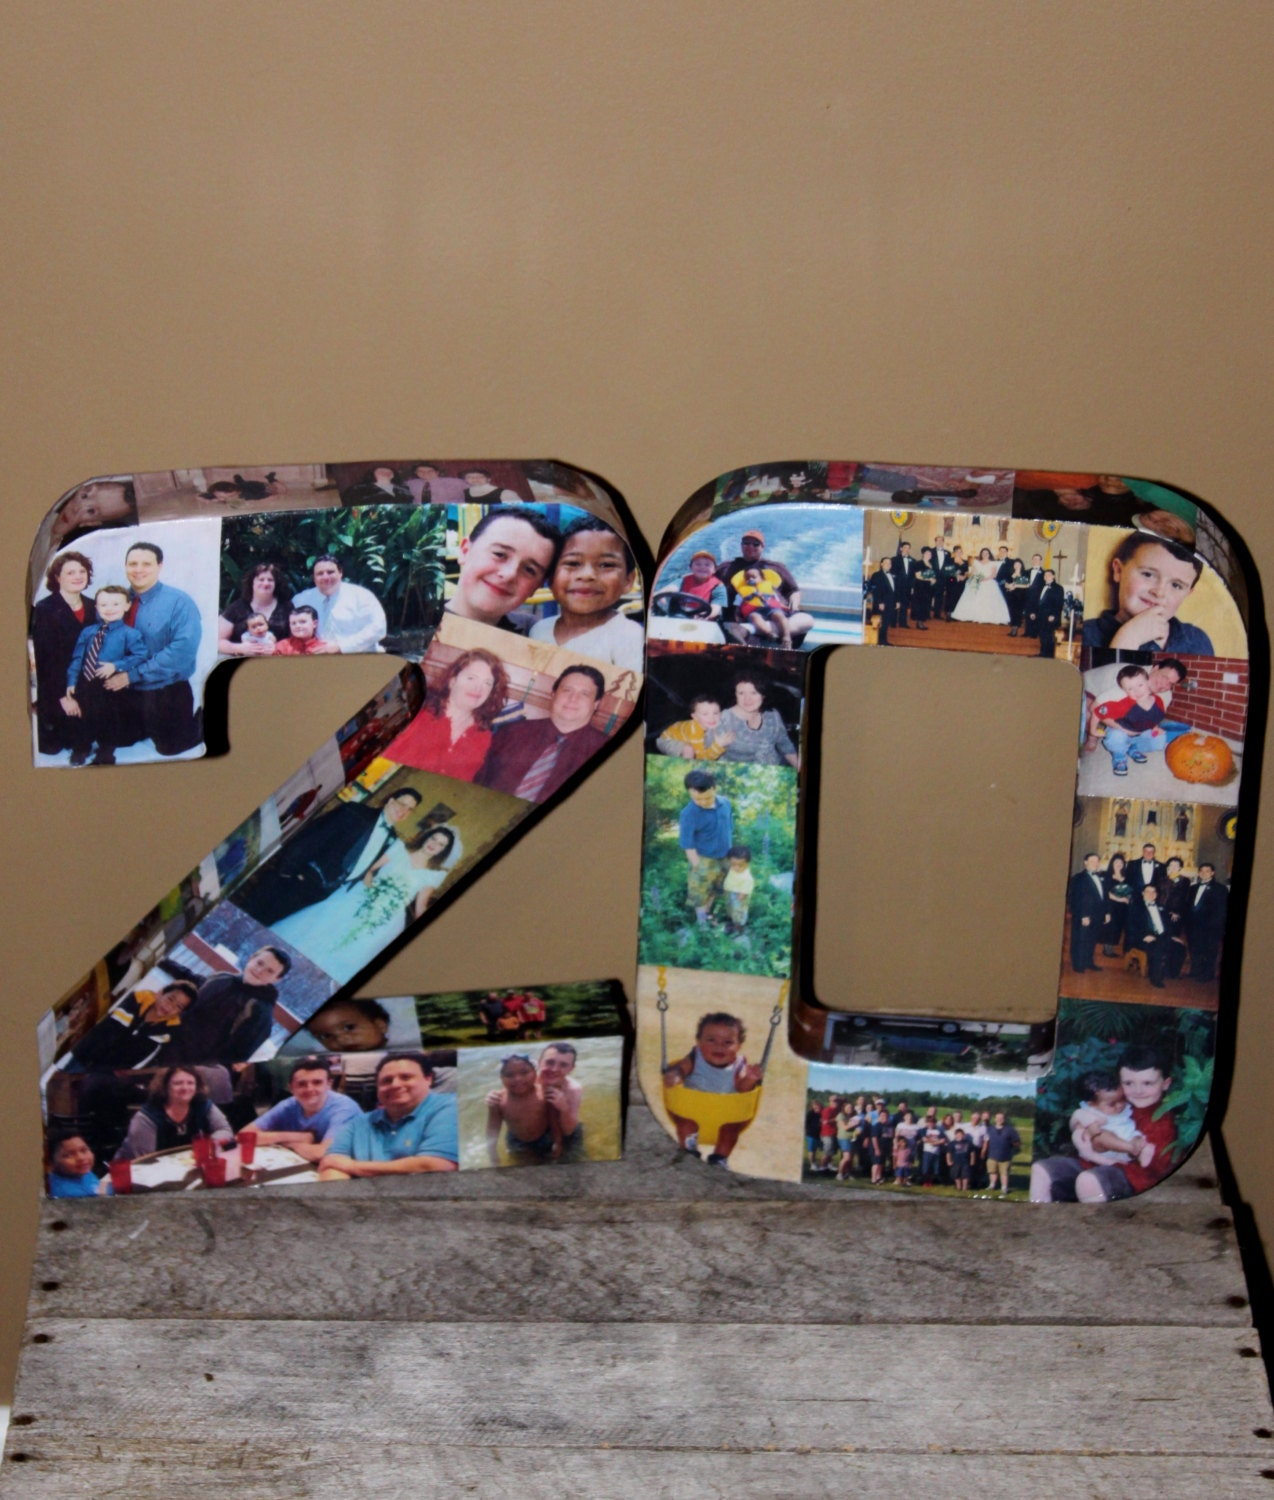 20th wedding anniversary birthday 10th 40th 50th 75th graduation photo letter collage picture frame party decor senior year 2015 360 15